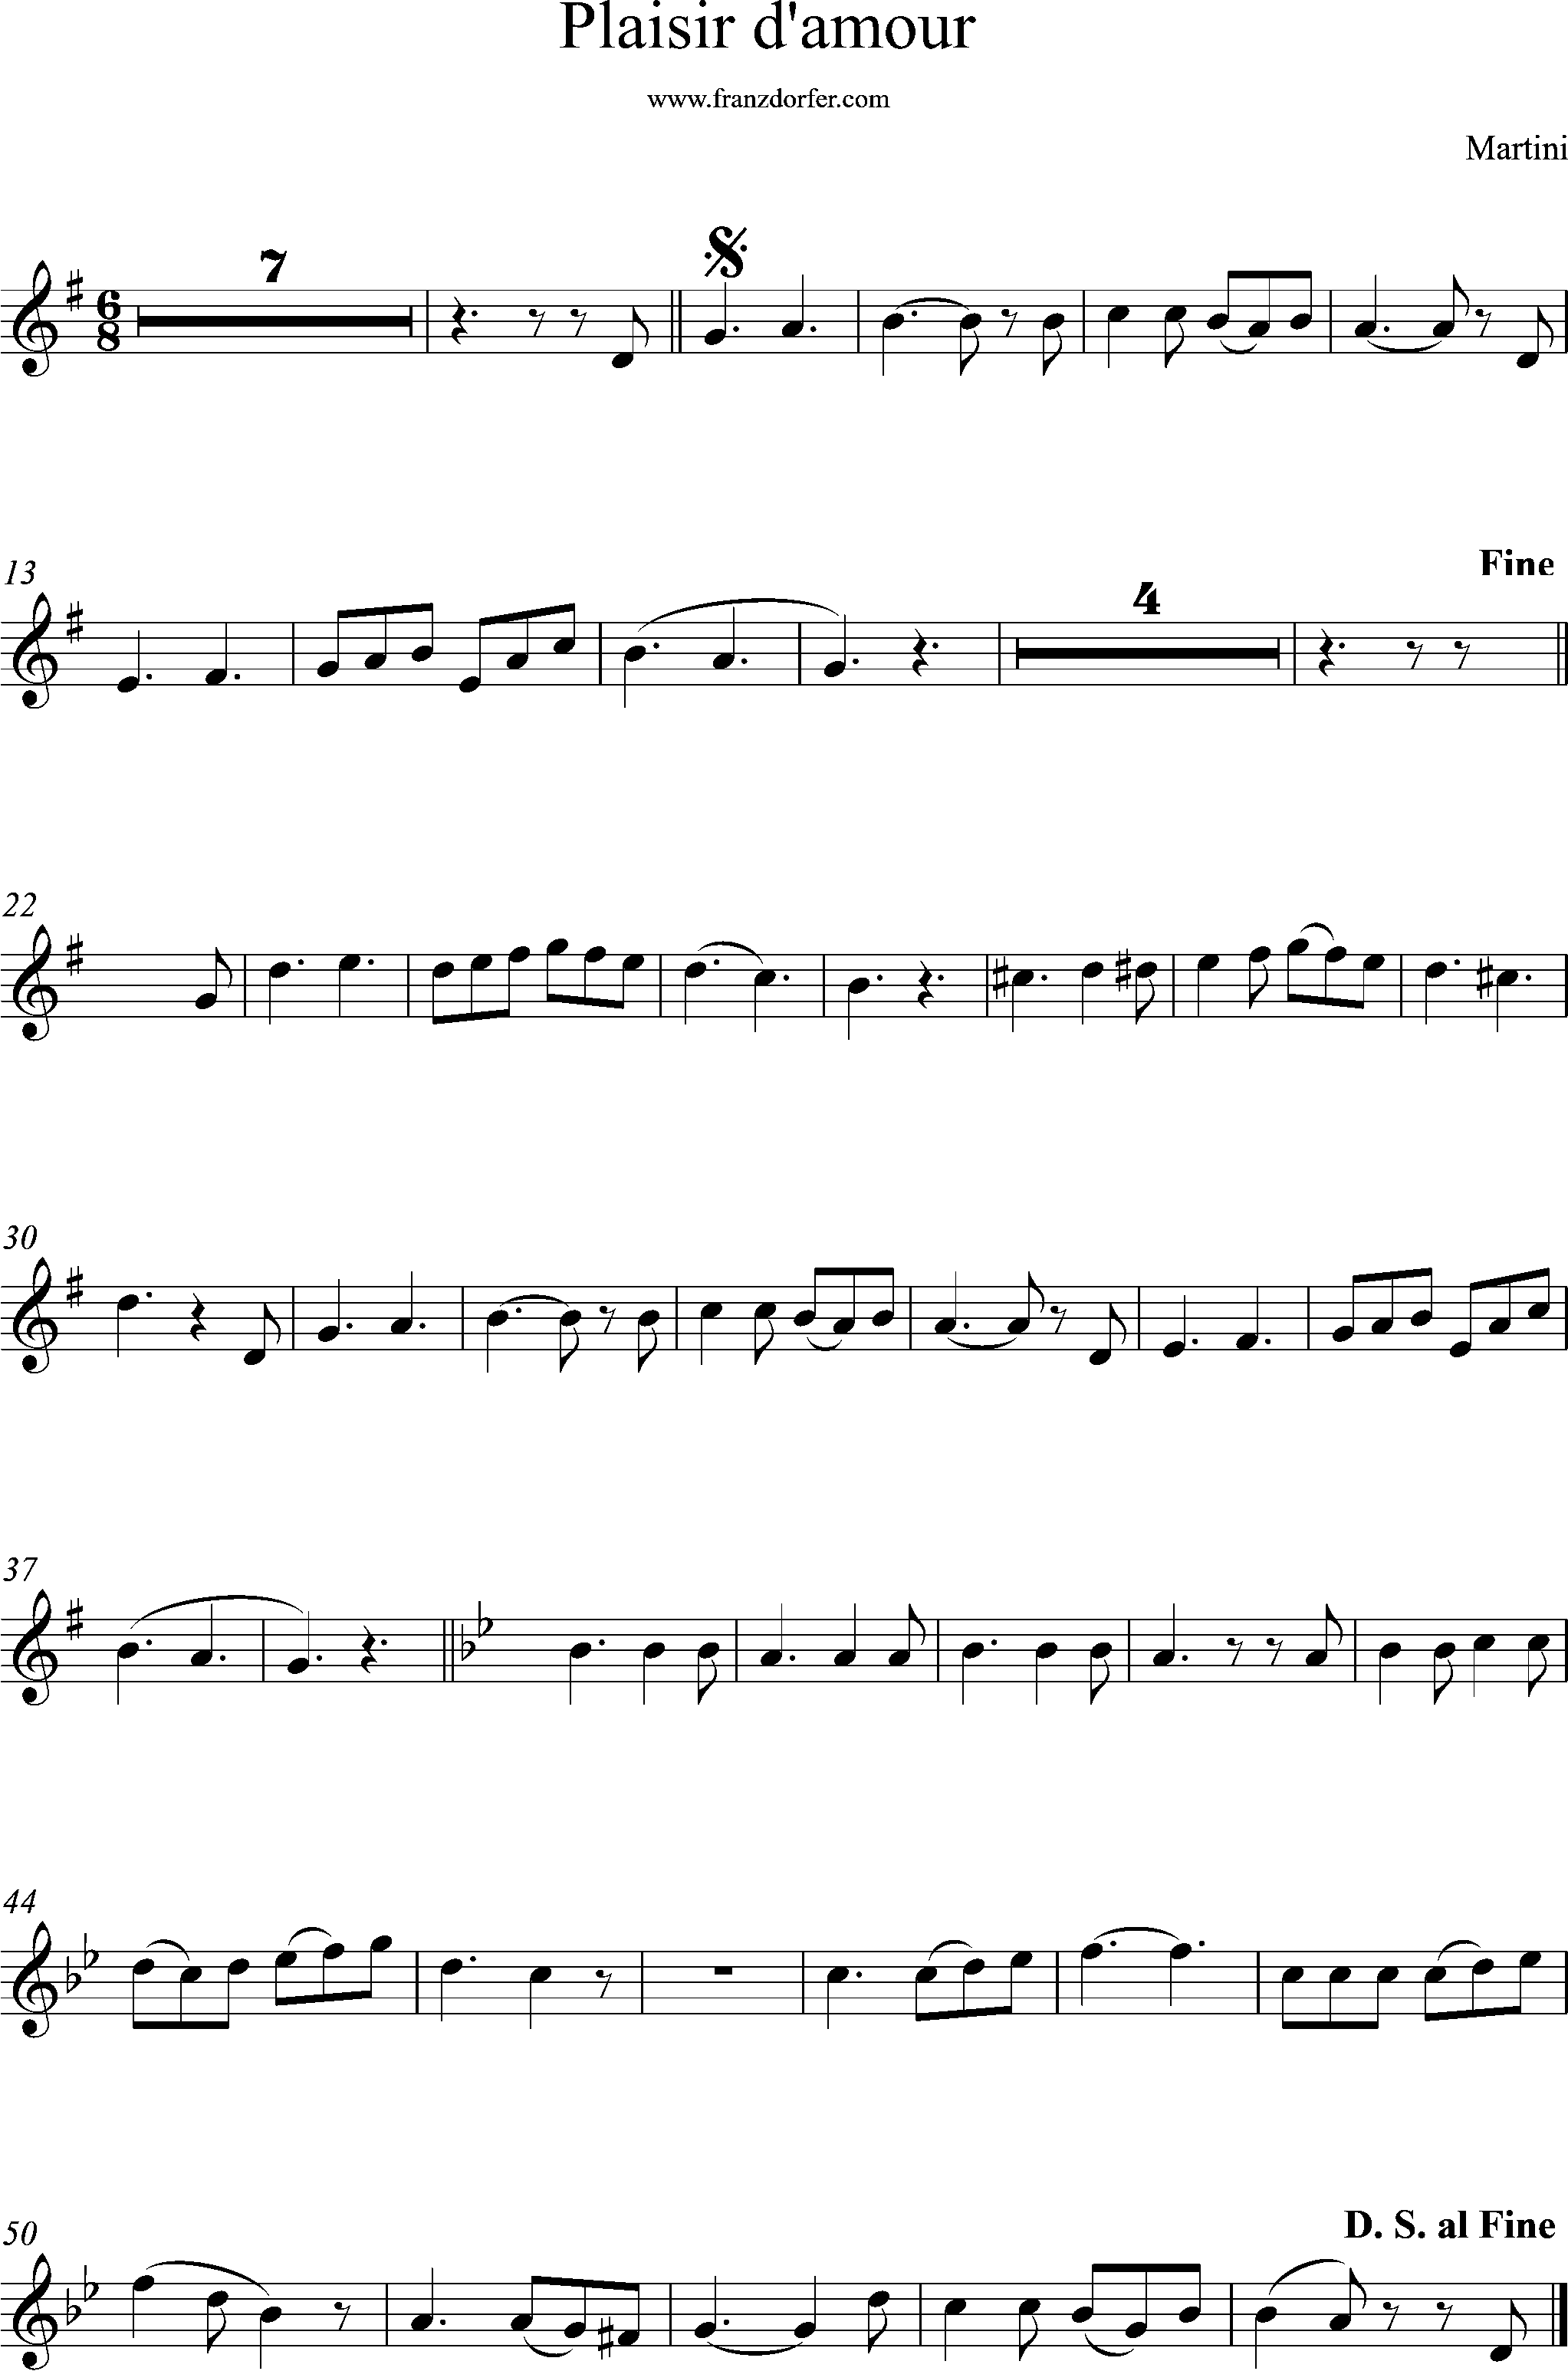 Flute, Querflöte sheetmusic, Plaisir damour, G-Major